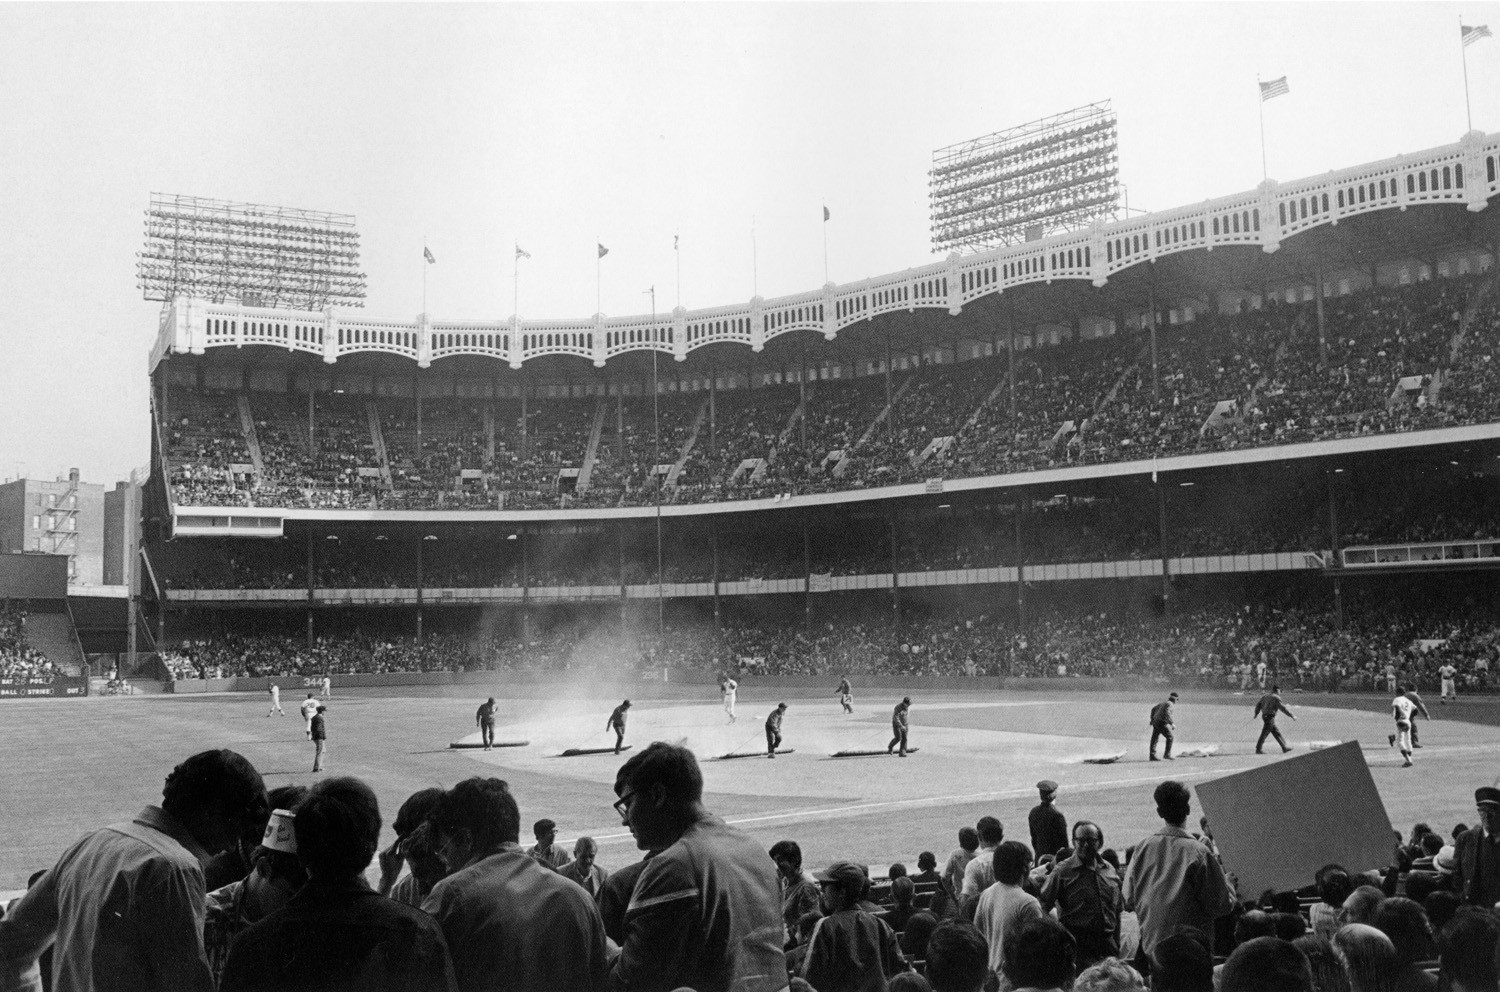 Tod Papageorge, Yankee Stadium, New York, 1970